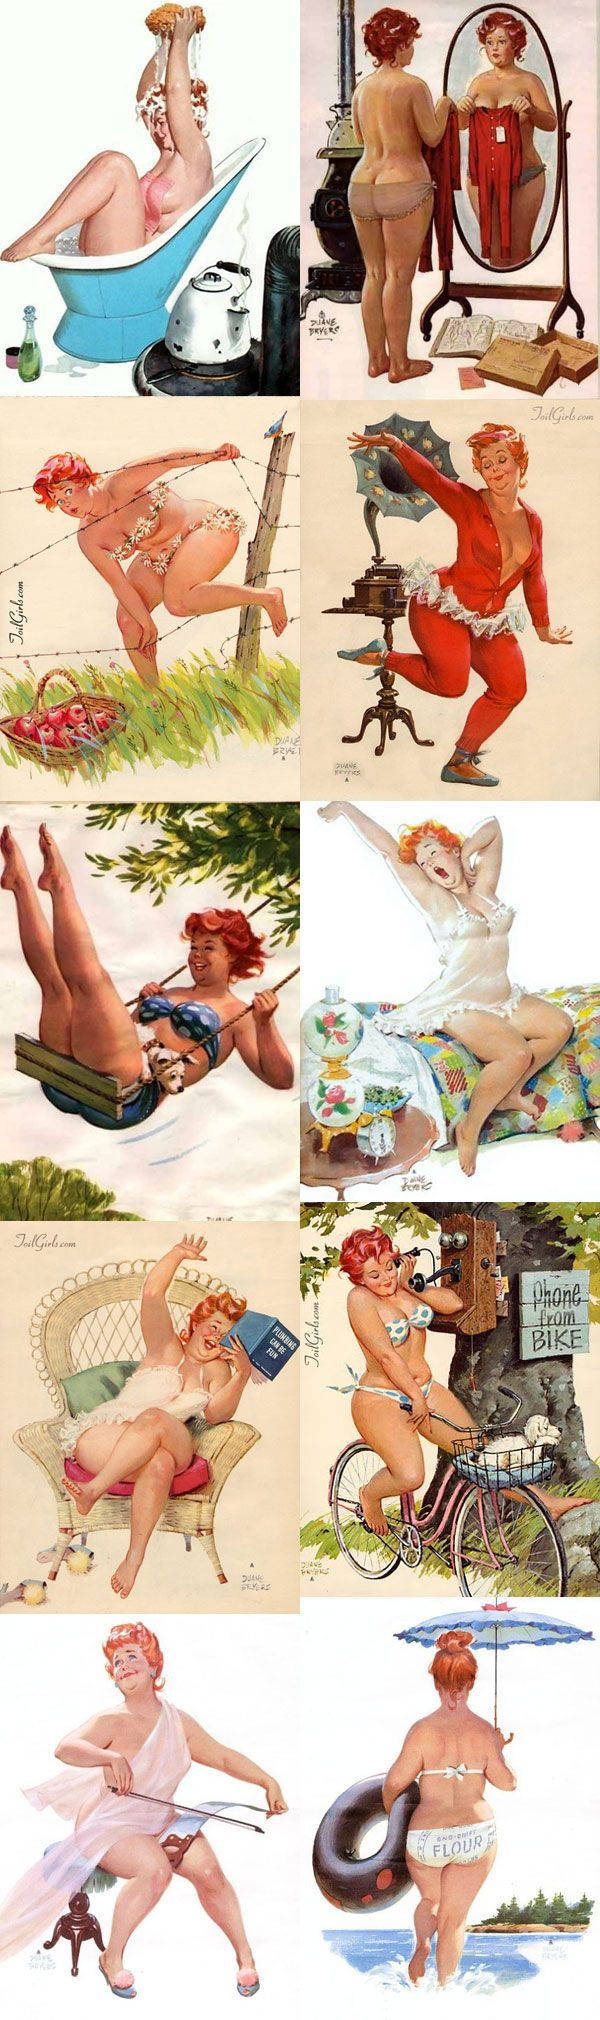 Duane-Bnryers-hilda-pinup-vintage-fofinha. Hilda... our original Plus Size Pinup... 40's era men liked big legs and hips... they knew what hot was. https://www.pinterest.com/fashionplussize/fashion-bug-vintage-retro-and-gothic-plus-size/